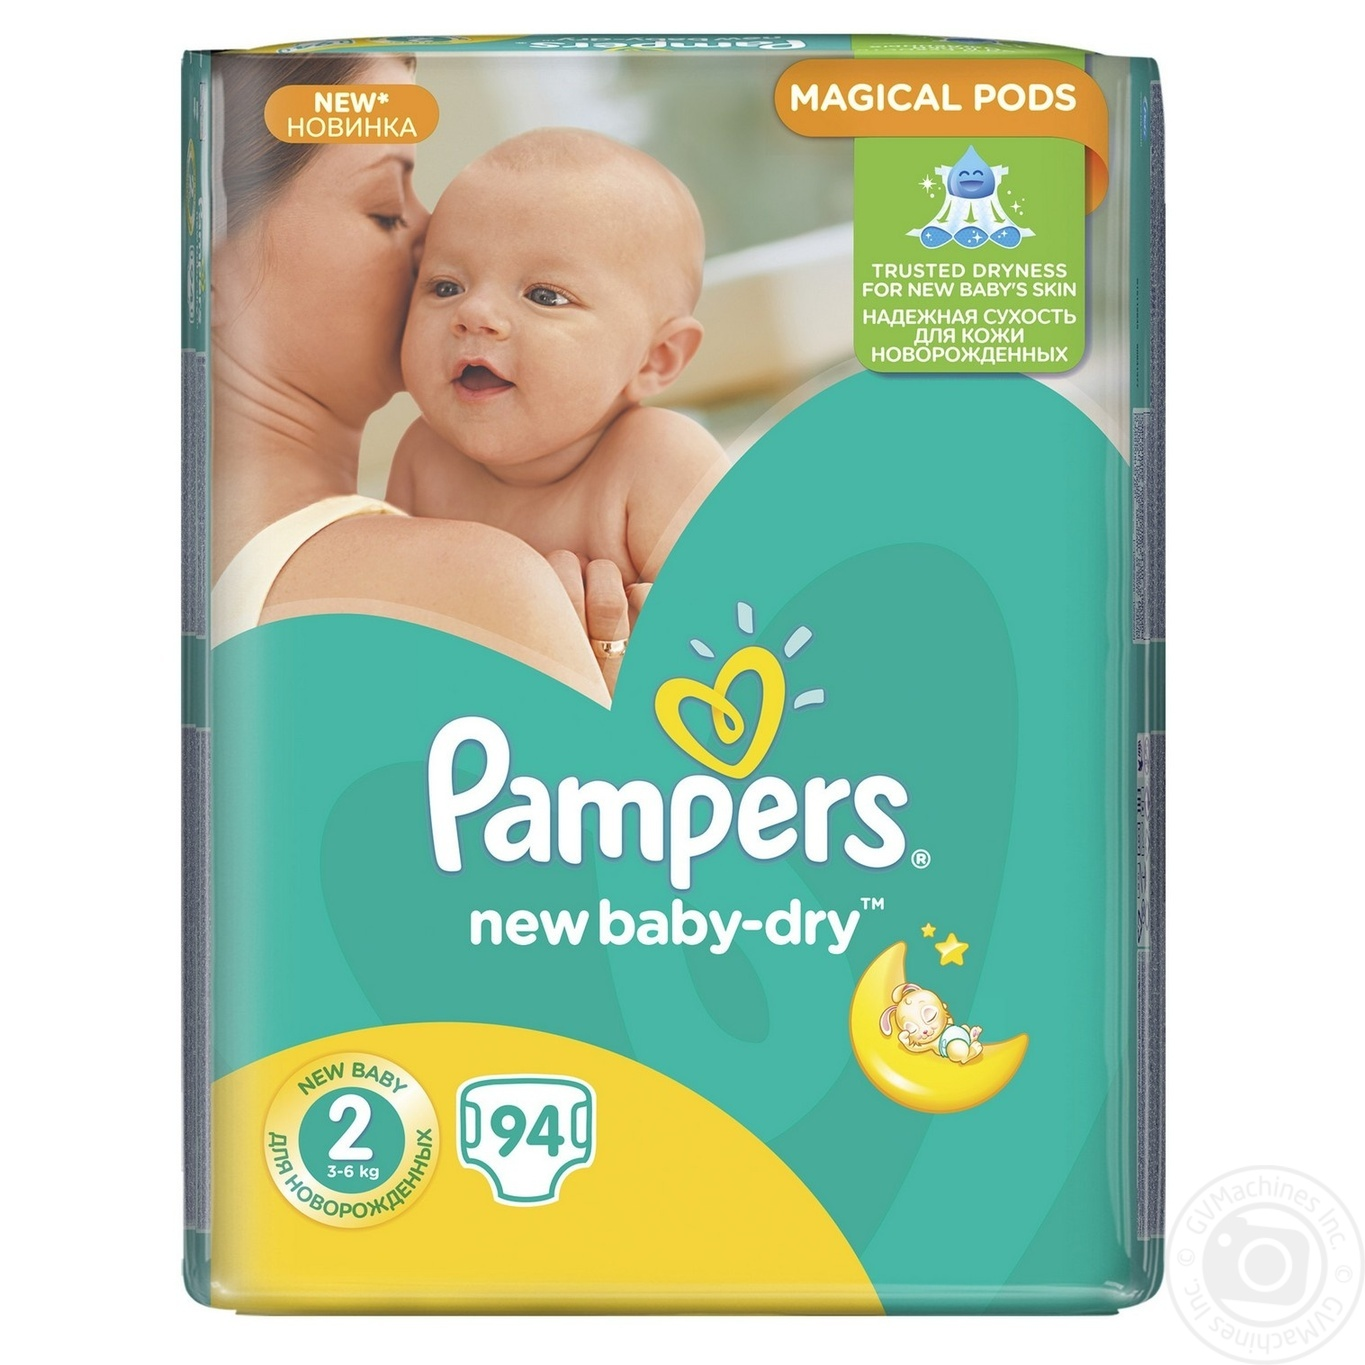 diapers pampers new baby dry 2 mini 3 6kg 94pcs babies baby care diapers. Black Bedroom Furniture Sets. Home Design Ideas